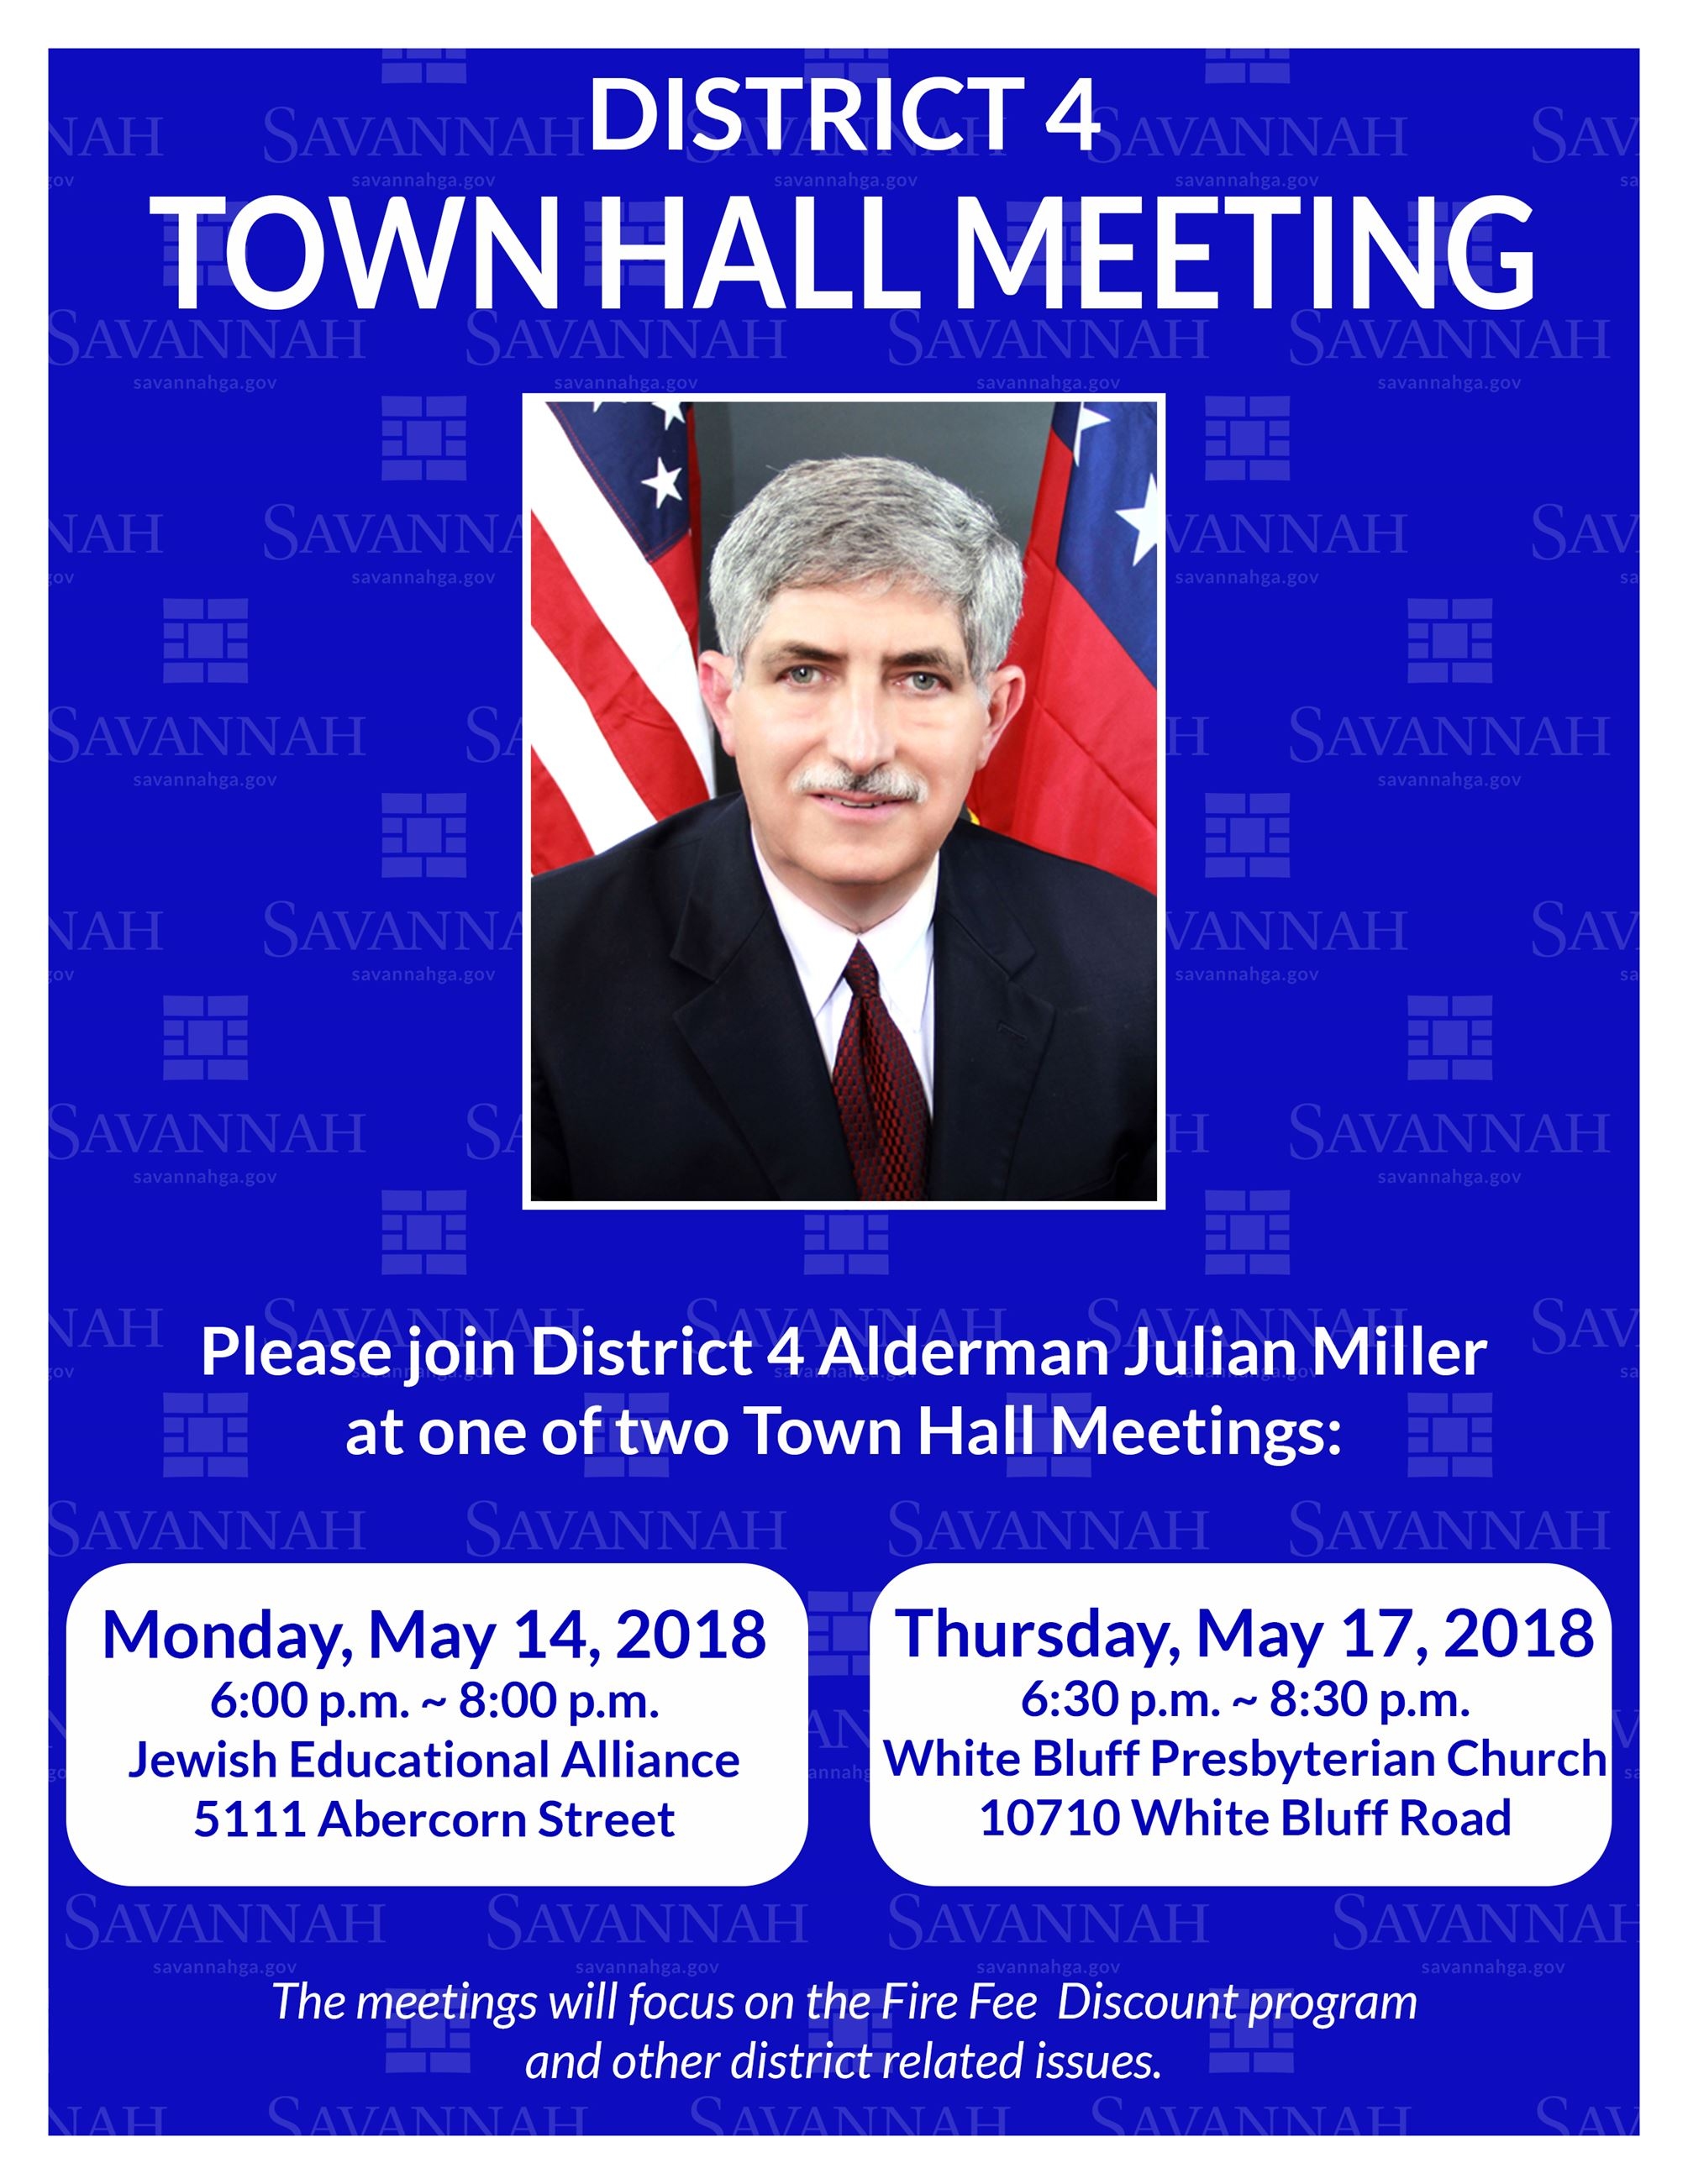 DISTRICT 4 TOWN HALL INVITATION